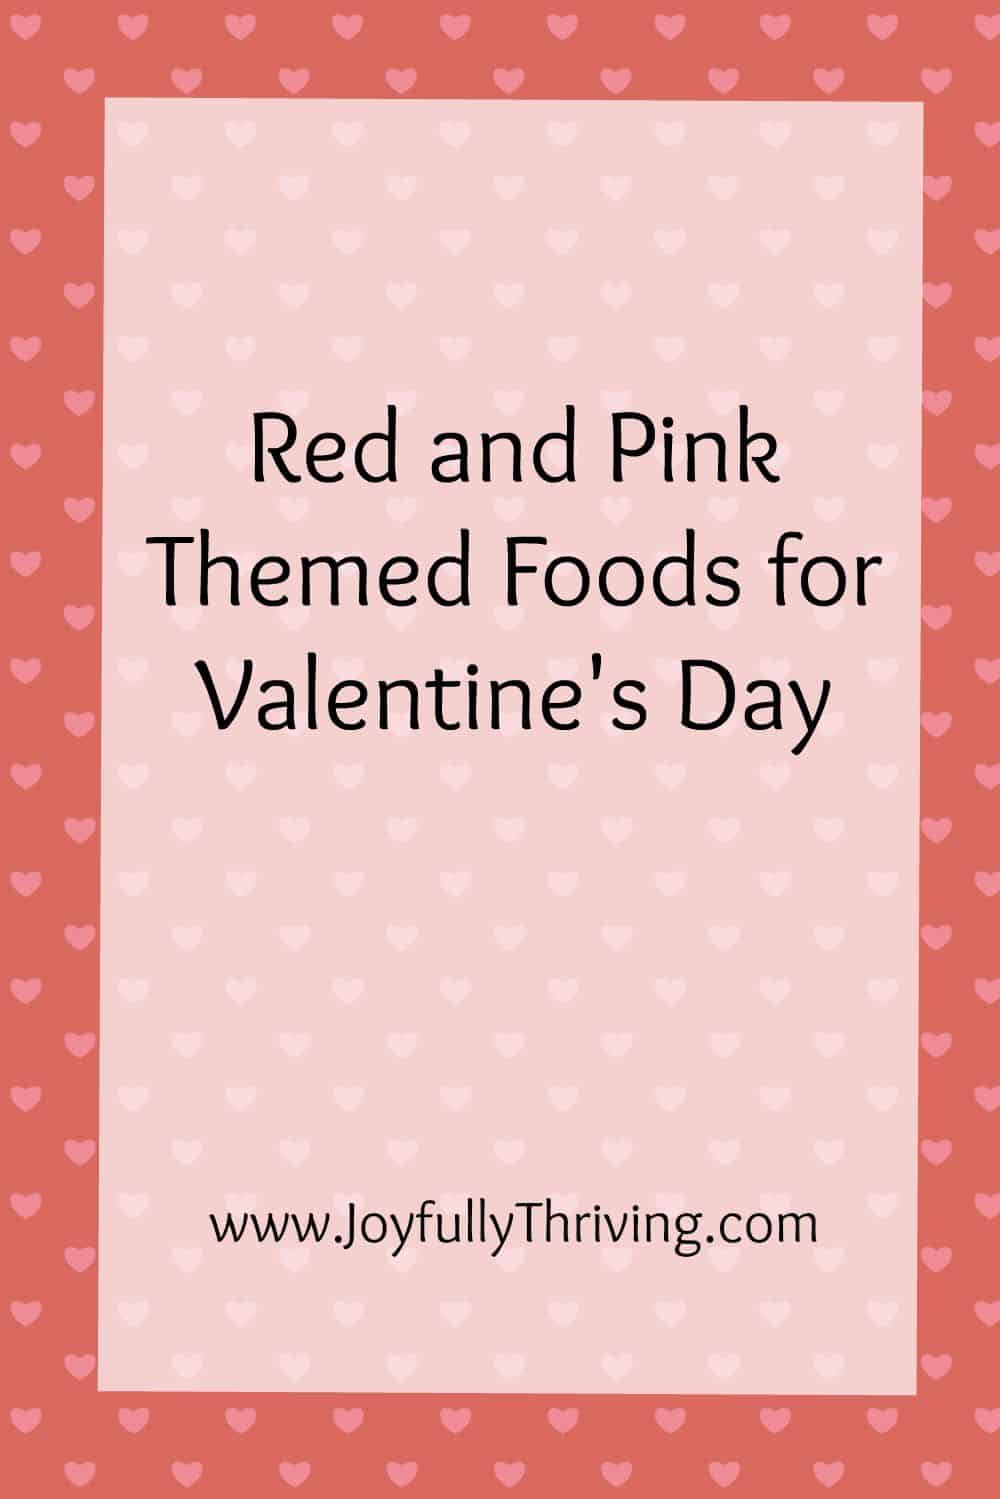 red and pink themed food ideas for valentines day if youre looking for - Valentines Day Meal Ideas